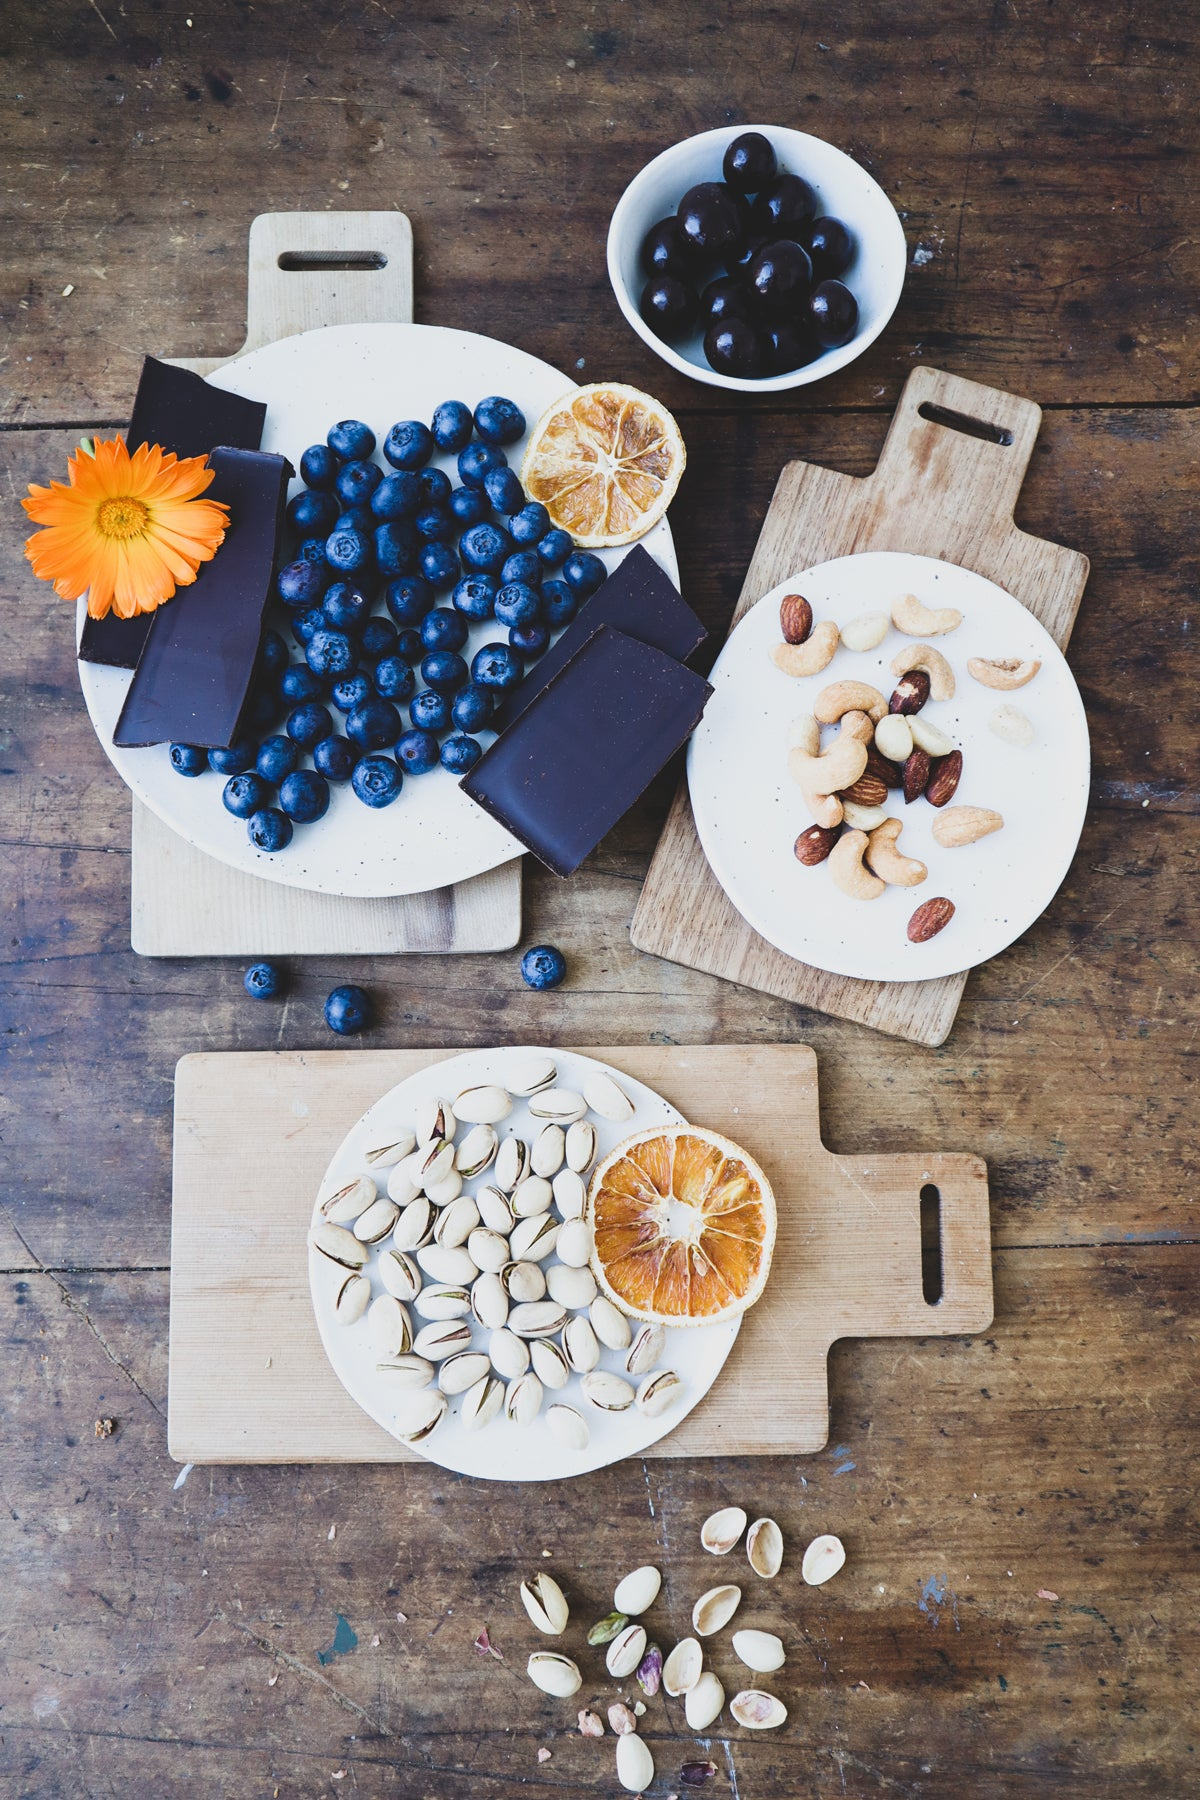 Jason Grant styles a grazing board with Winterwares ceramics and blueberries